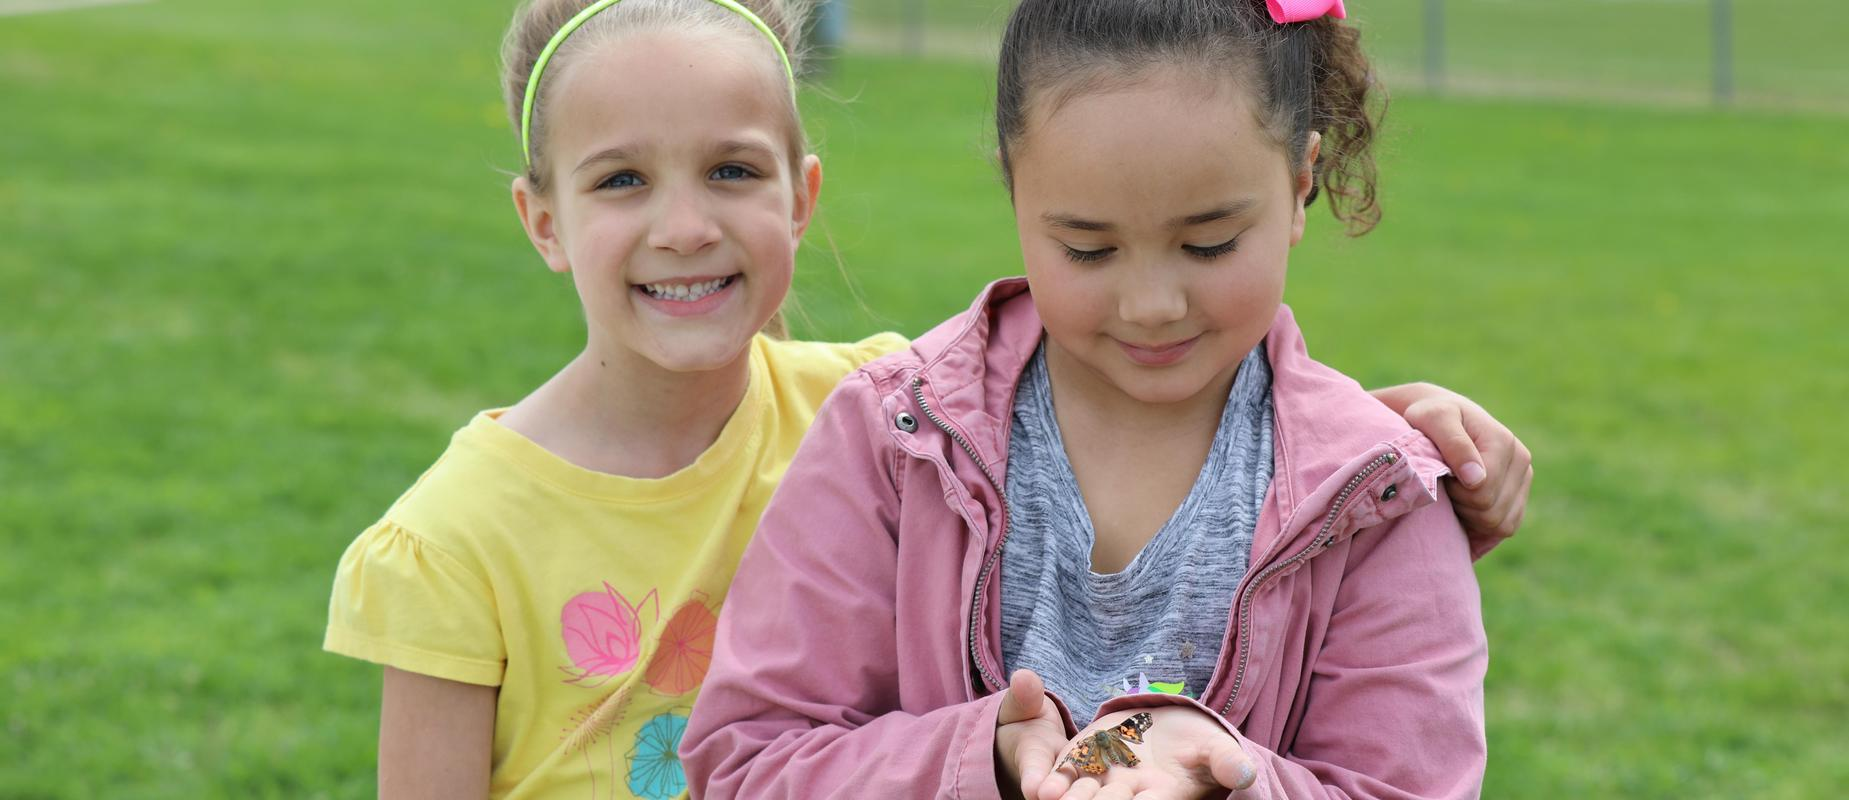 2 girls with butterfly outside in their hands